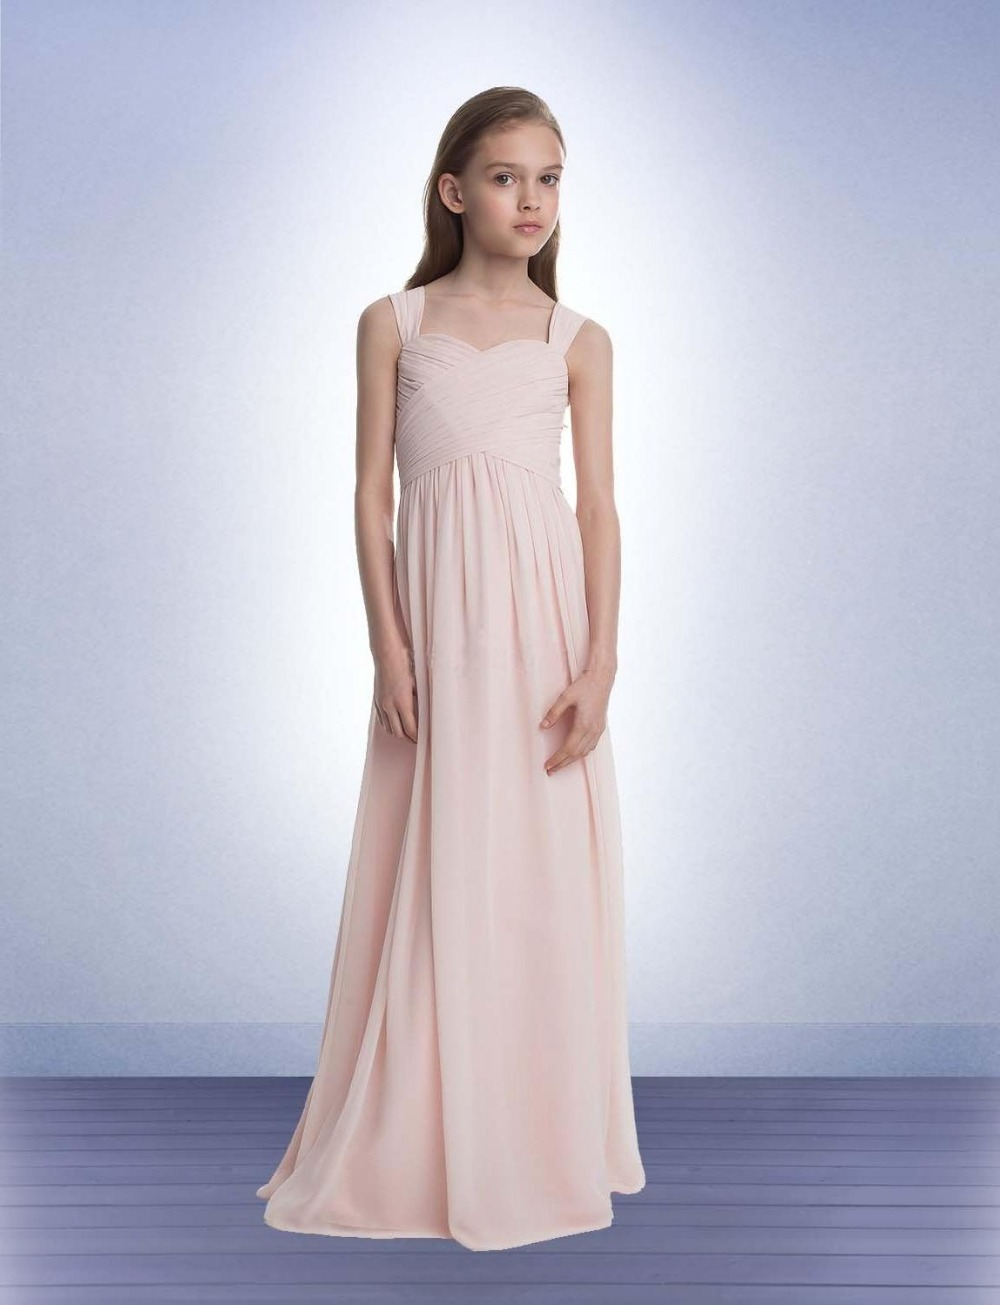 Compare Prices on Junior Bridesmaid Dresses Cheap- Online Shopping ...